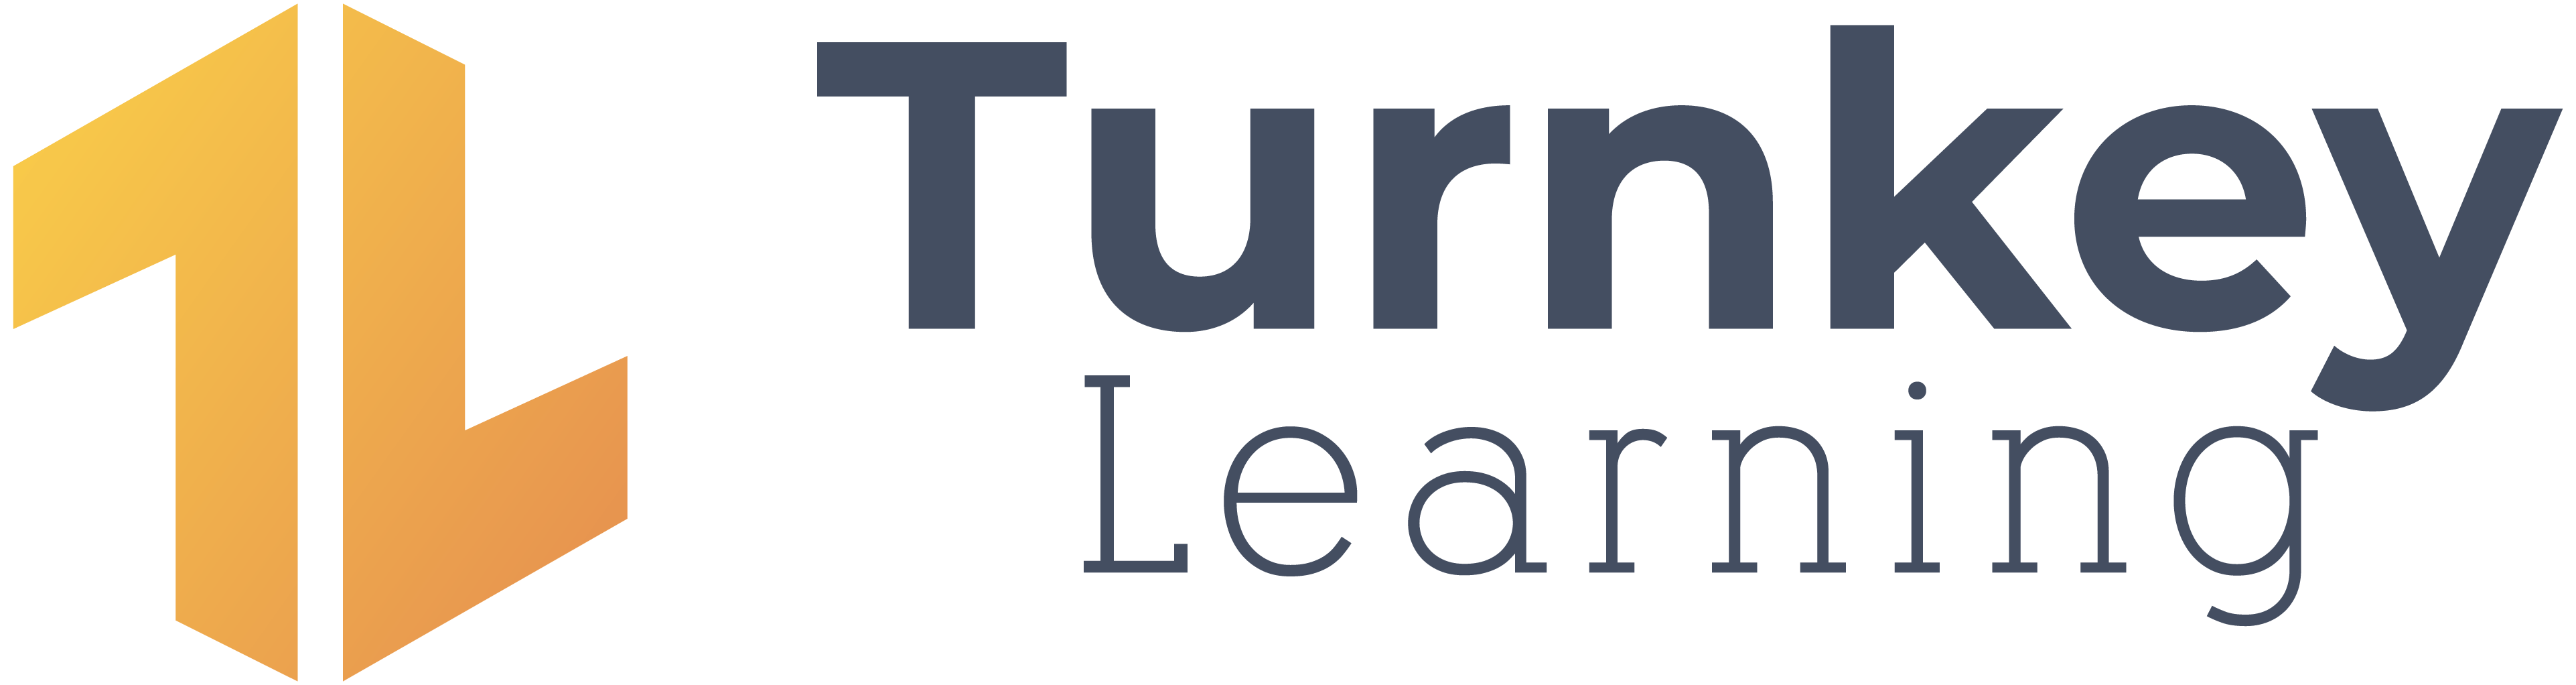 Turnkey Learning